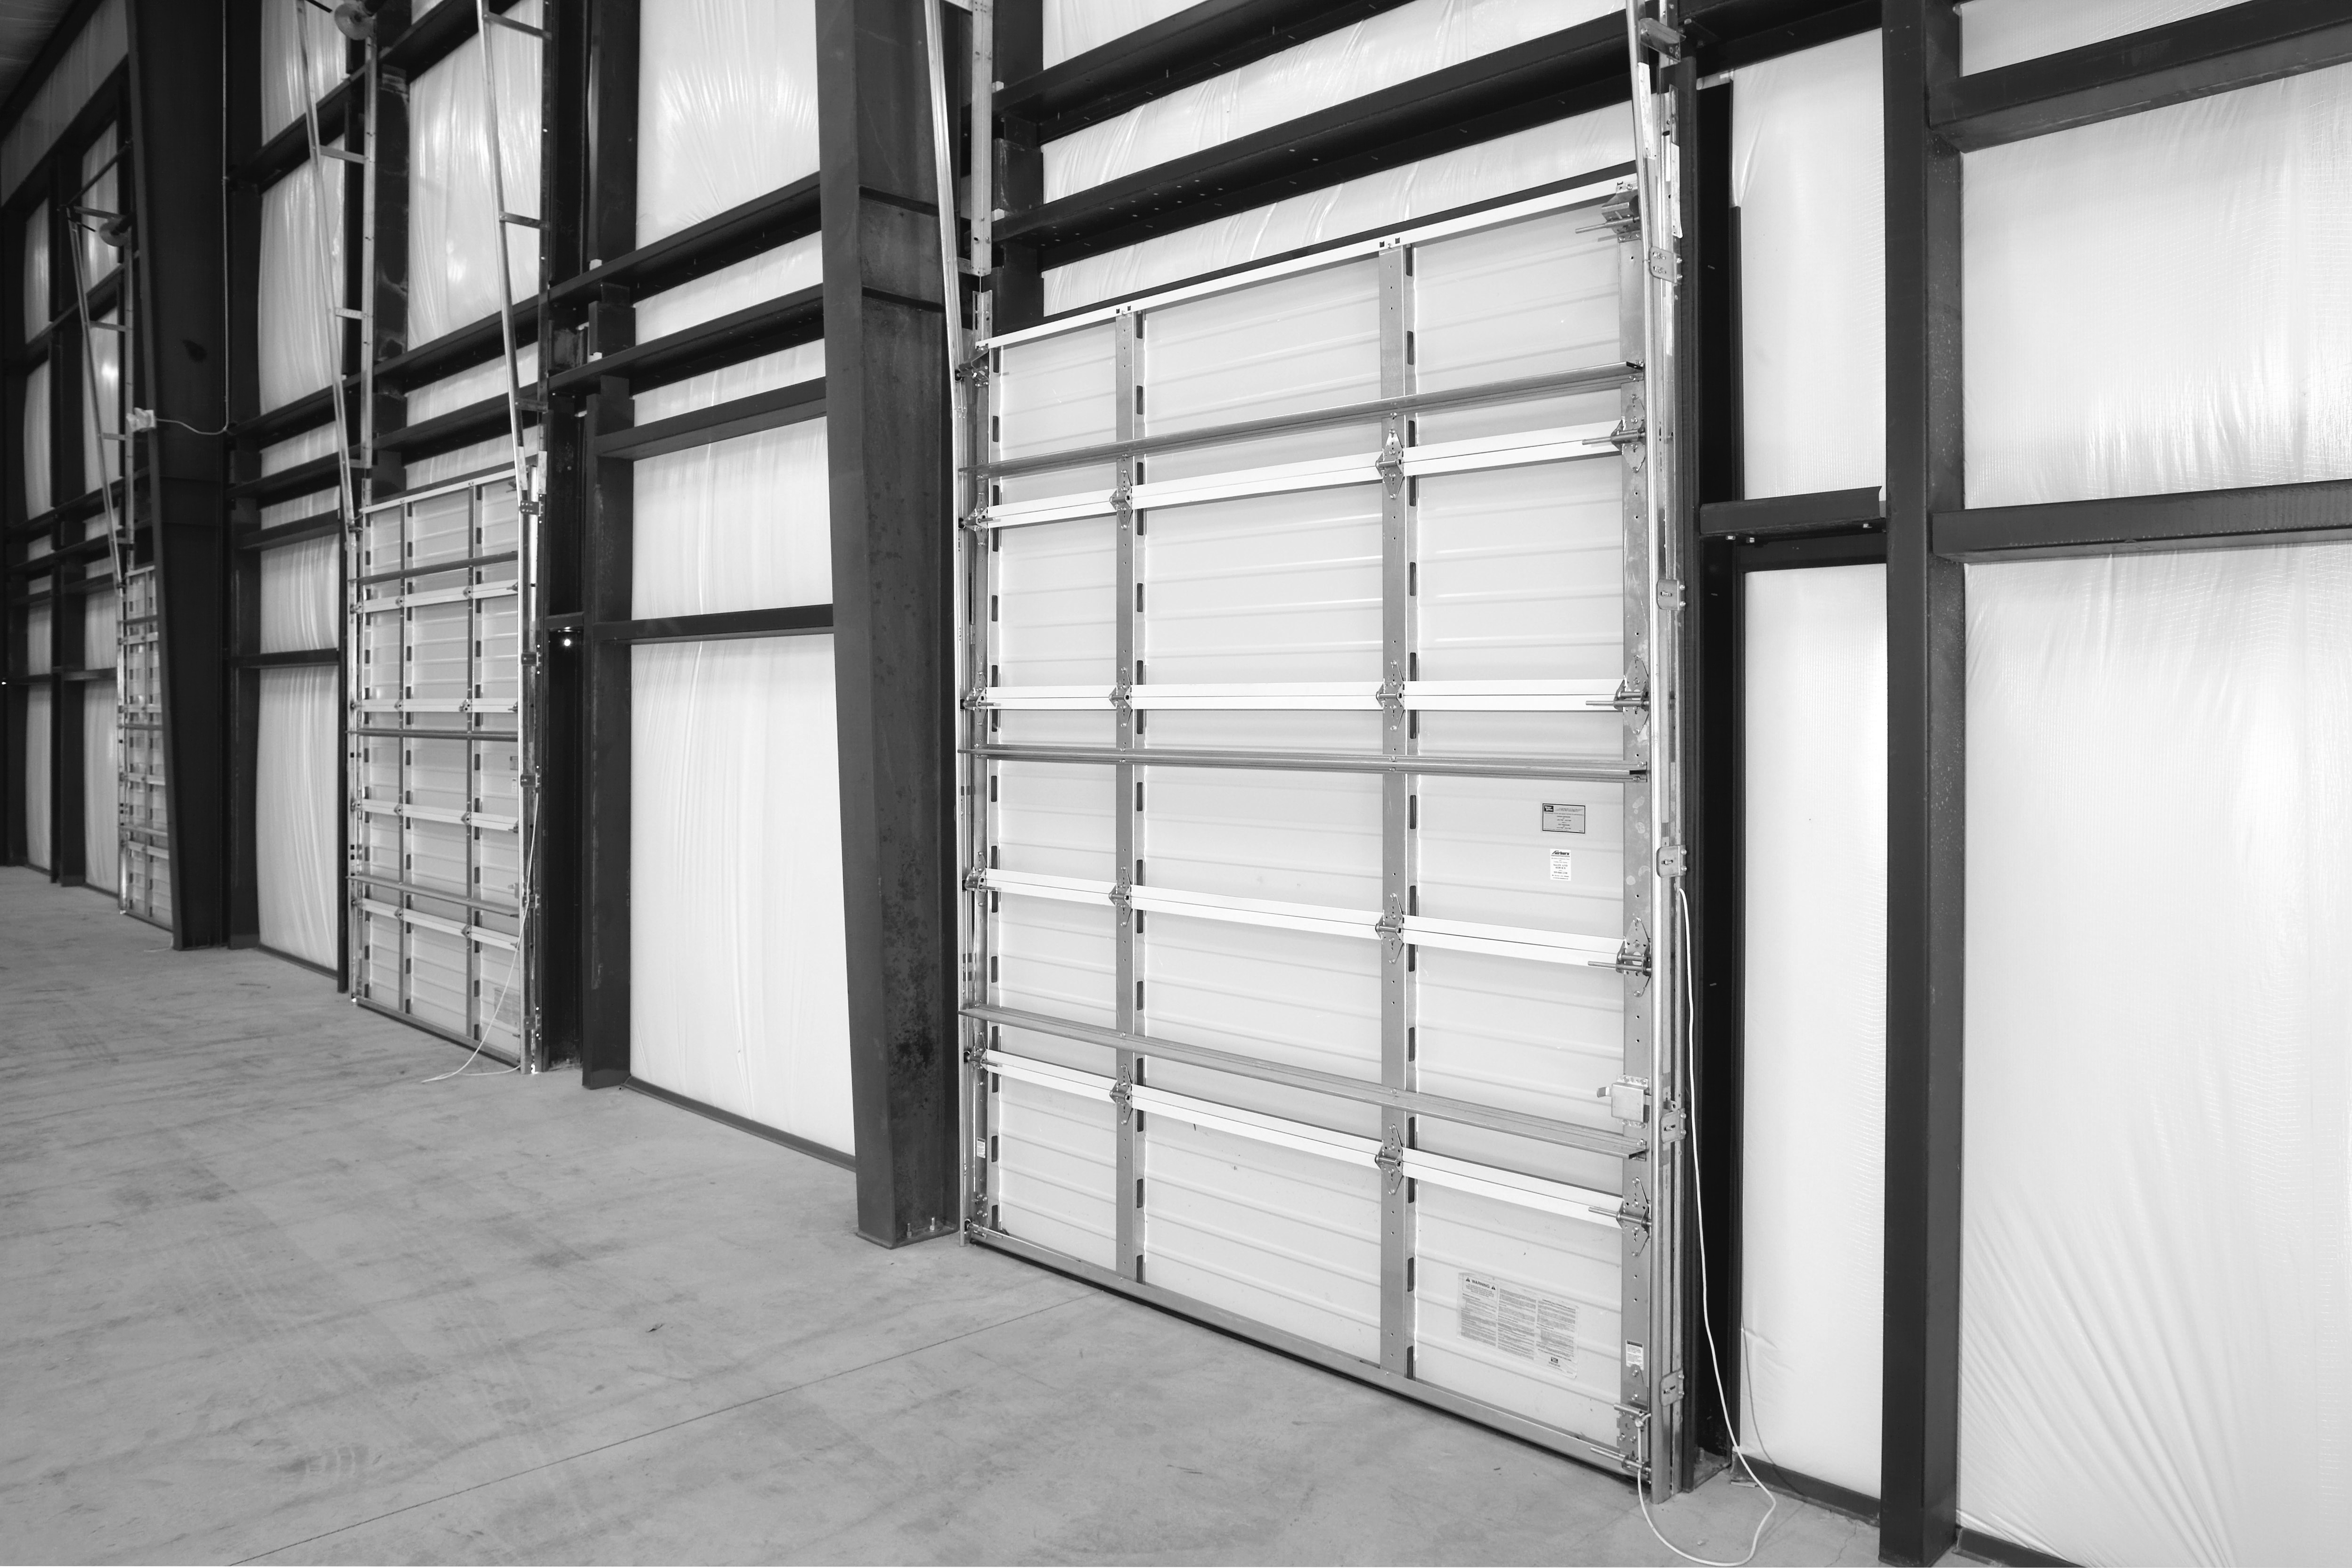 Wayne Dalton has introduced two new commercial sectional garage door options u2014 the Impact Section and Simple Install System u2014 for doors in environments ... & Wayne Dalton System for Commercial Sectional Doors | Commercial ...